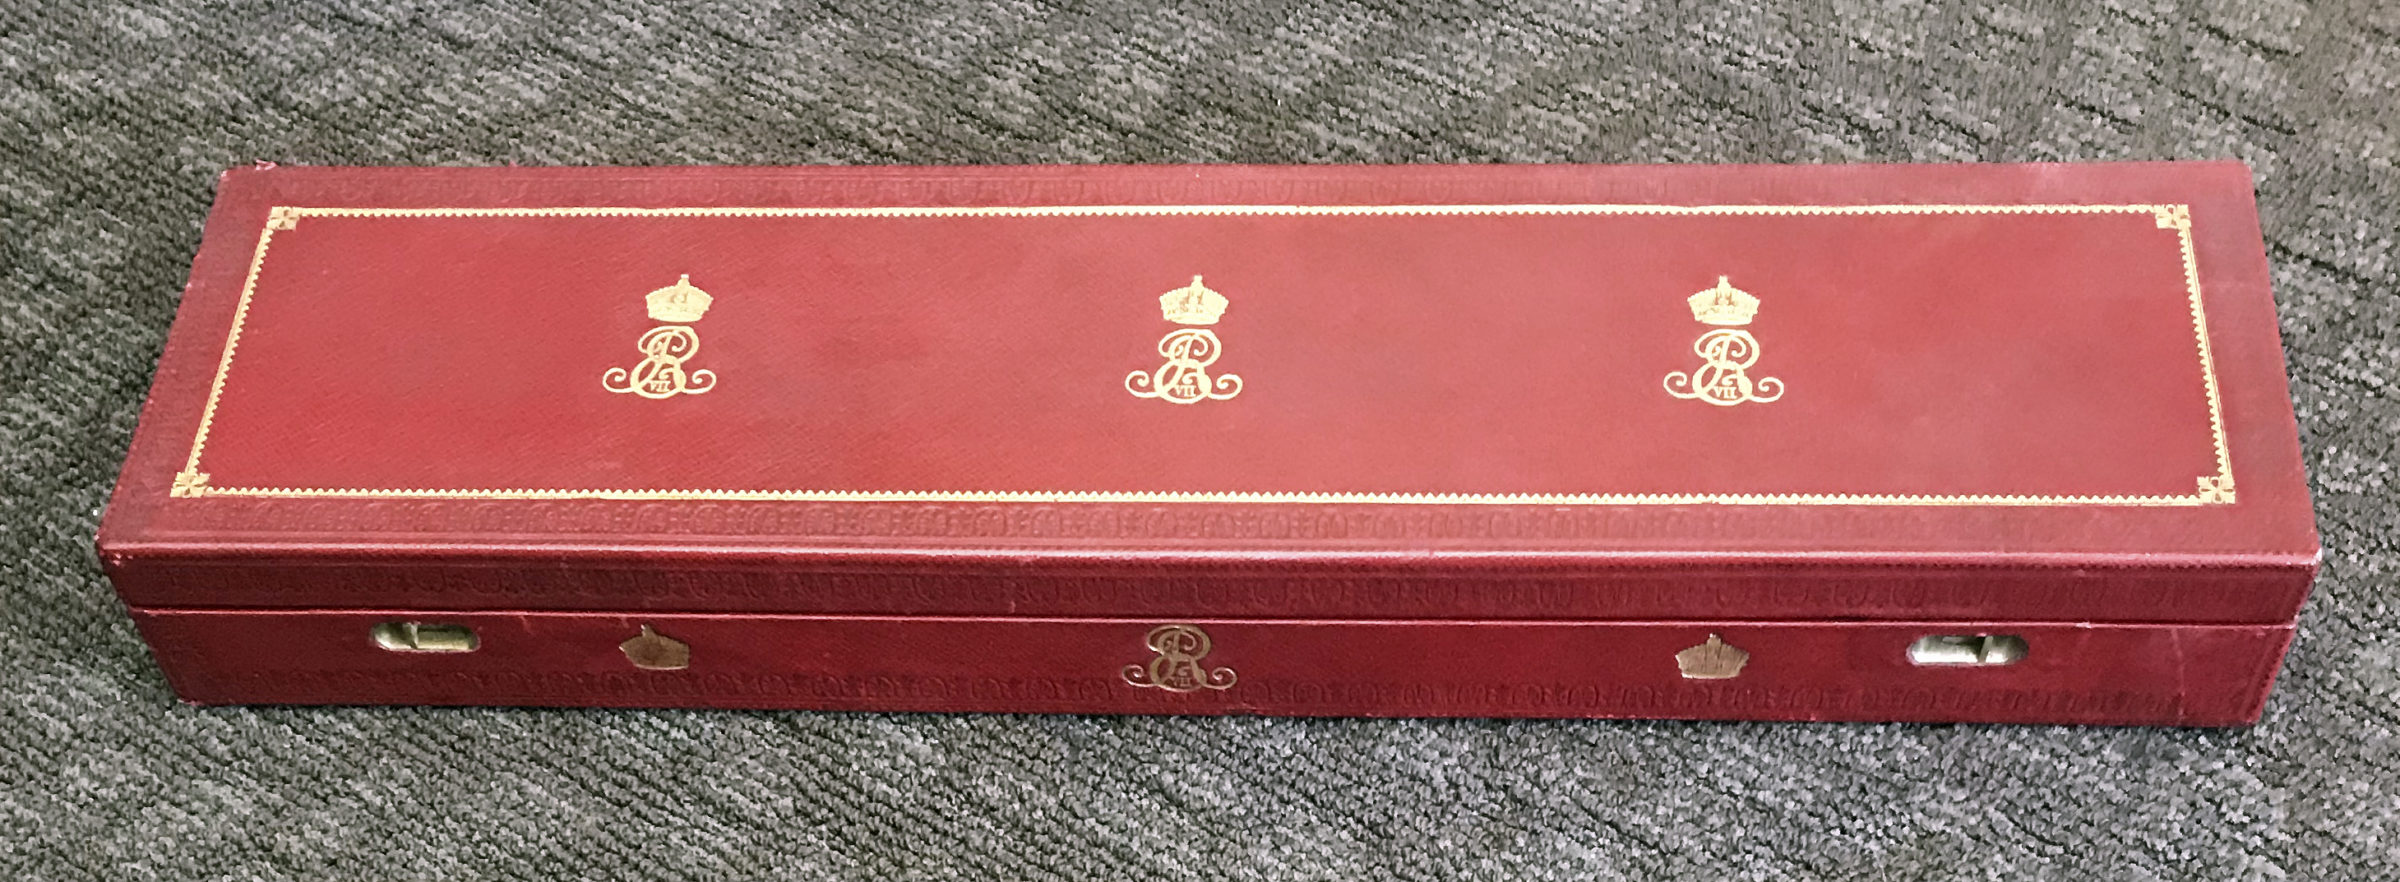 Handwritten Royal License Granting the Use of the Last Name and Arms of Luxmoore, in the Original Red Leather Box with Embossed Decoration and the Gilt Monogram of King Edward VII